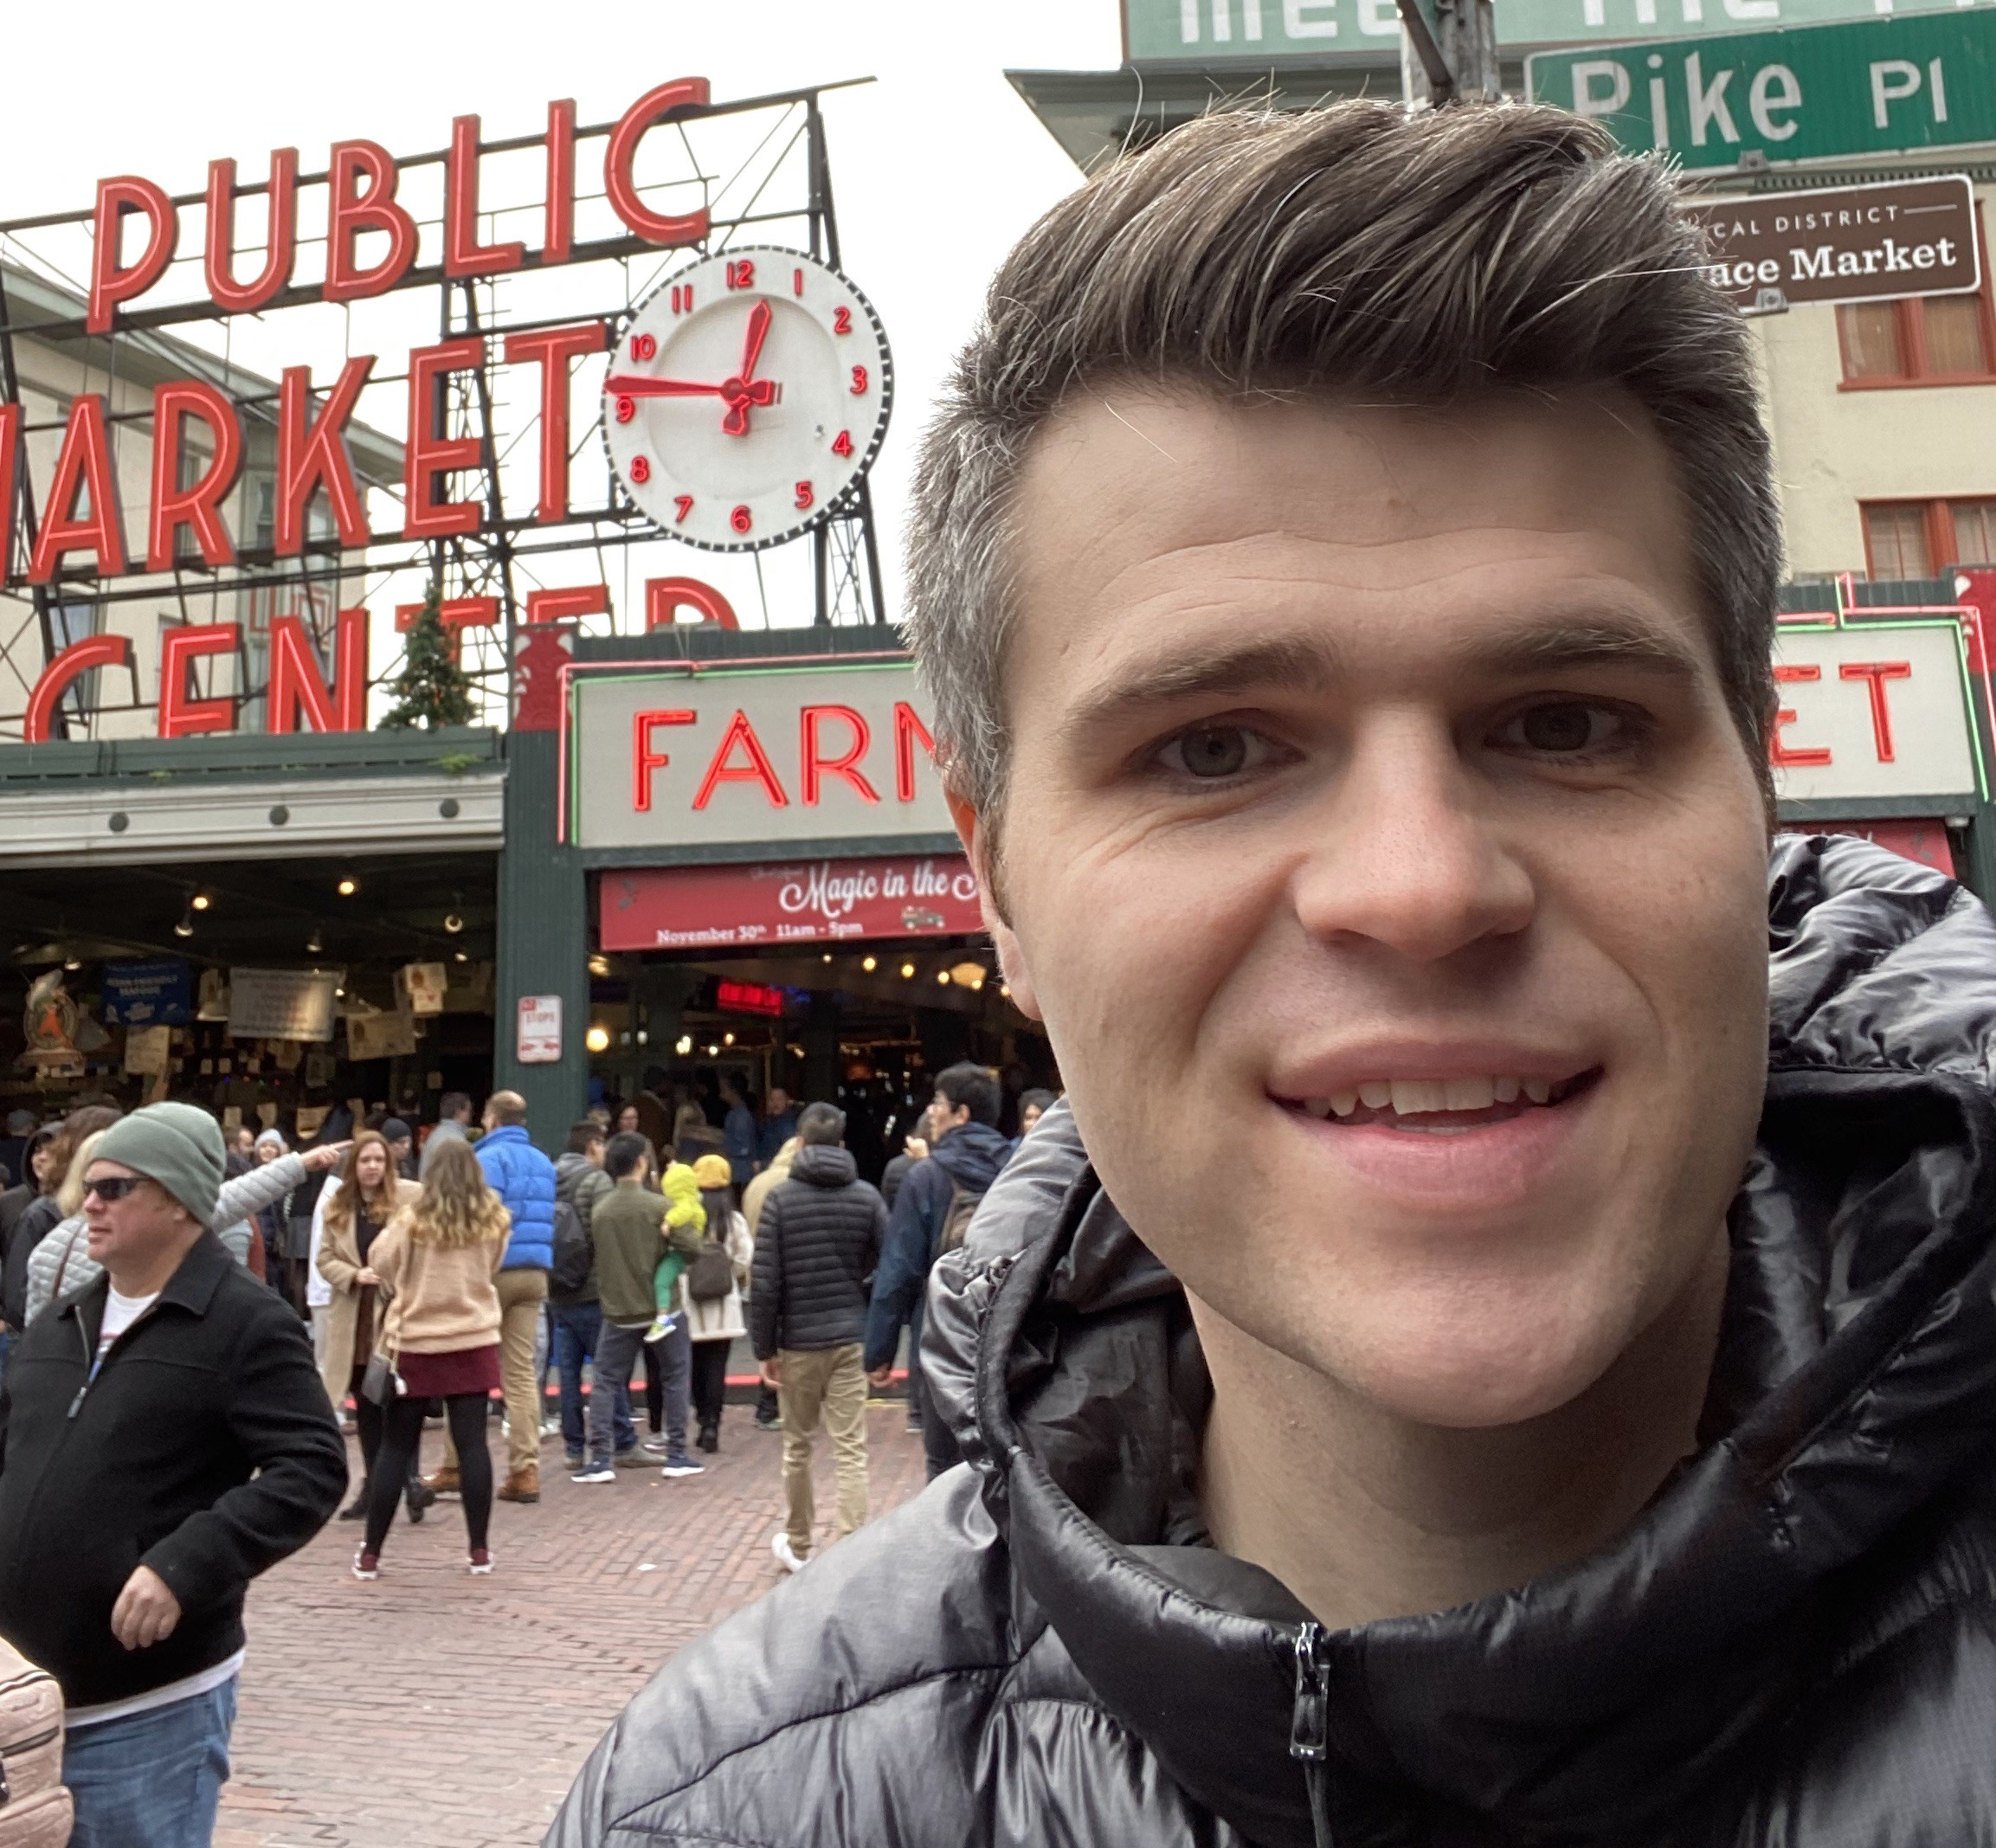 Jamund outside of pike place market in Seattle in November 2019